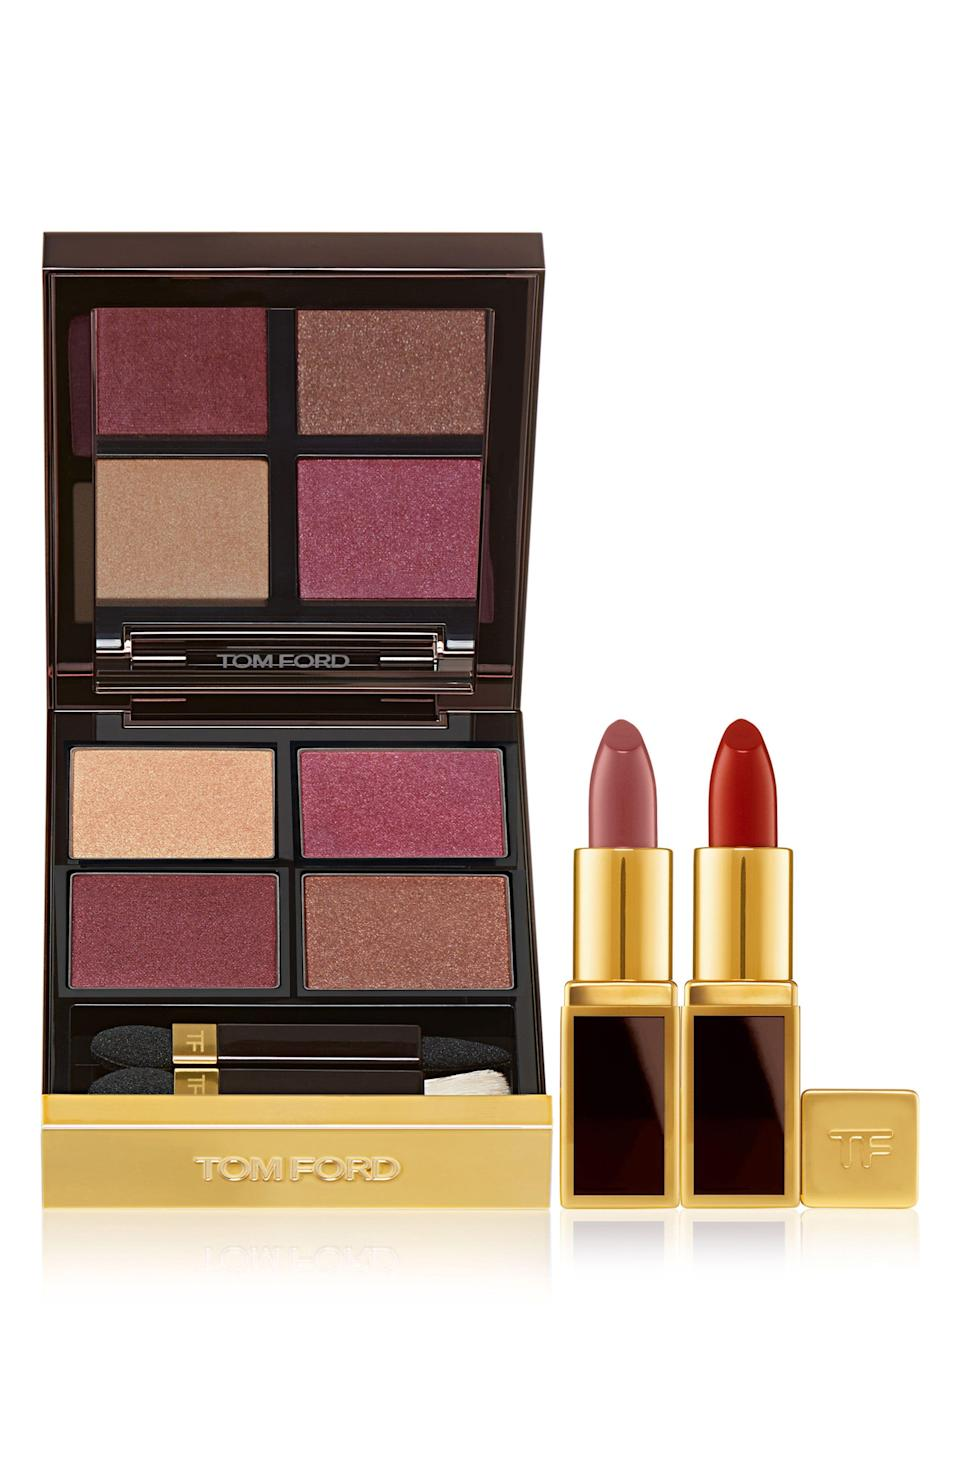 "<p><strong>TOM FORD</strong></p><p>nordstrom.com</p><p><a href=""https://go.redirectingat.com?id=74968X1596630&url=https%3A%2F%2Fwww.nordstrom.com%2Fs%2Ftom-ford-eye-color-quad-mini-lip-color-set%2F5605637&sref=https%3A%2F%2Fwww.townandcountrymag.com%2Fstyle%2Fbeauty-products%2Fg33595678%2Fbeauty-buys-to-pick-up-during-the-2020-nordstrom-anniversary-sale%2F"" rel=""nofollow noopener"" target=""_blank"" data-ylk=""slk:Shop Now"" class=""link rapid-noclick-resp"">Shop Now</a></p><p>$88 </p>"